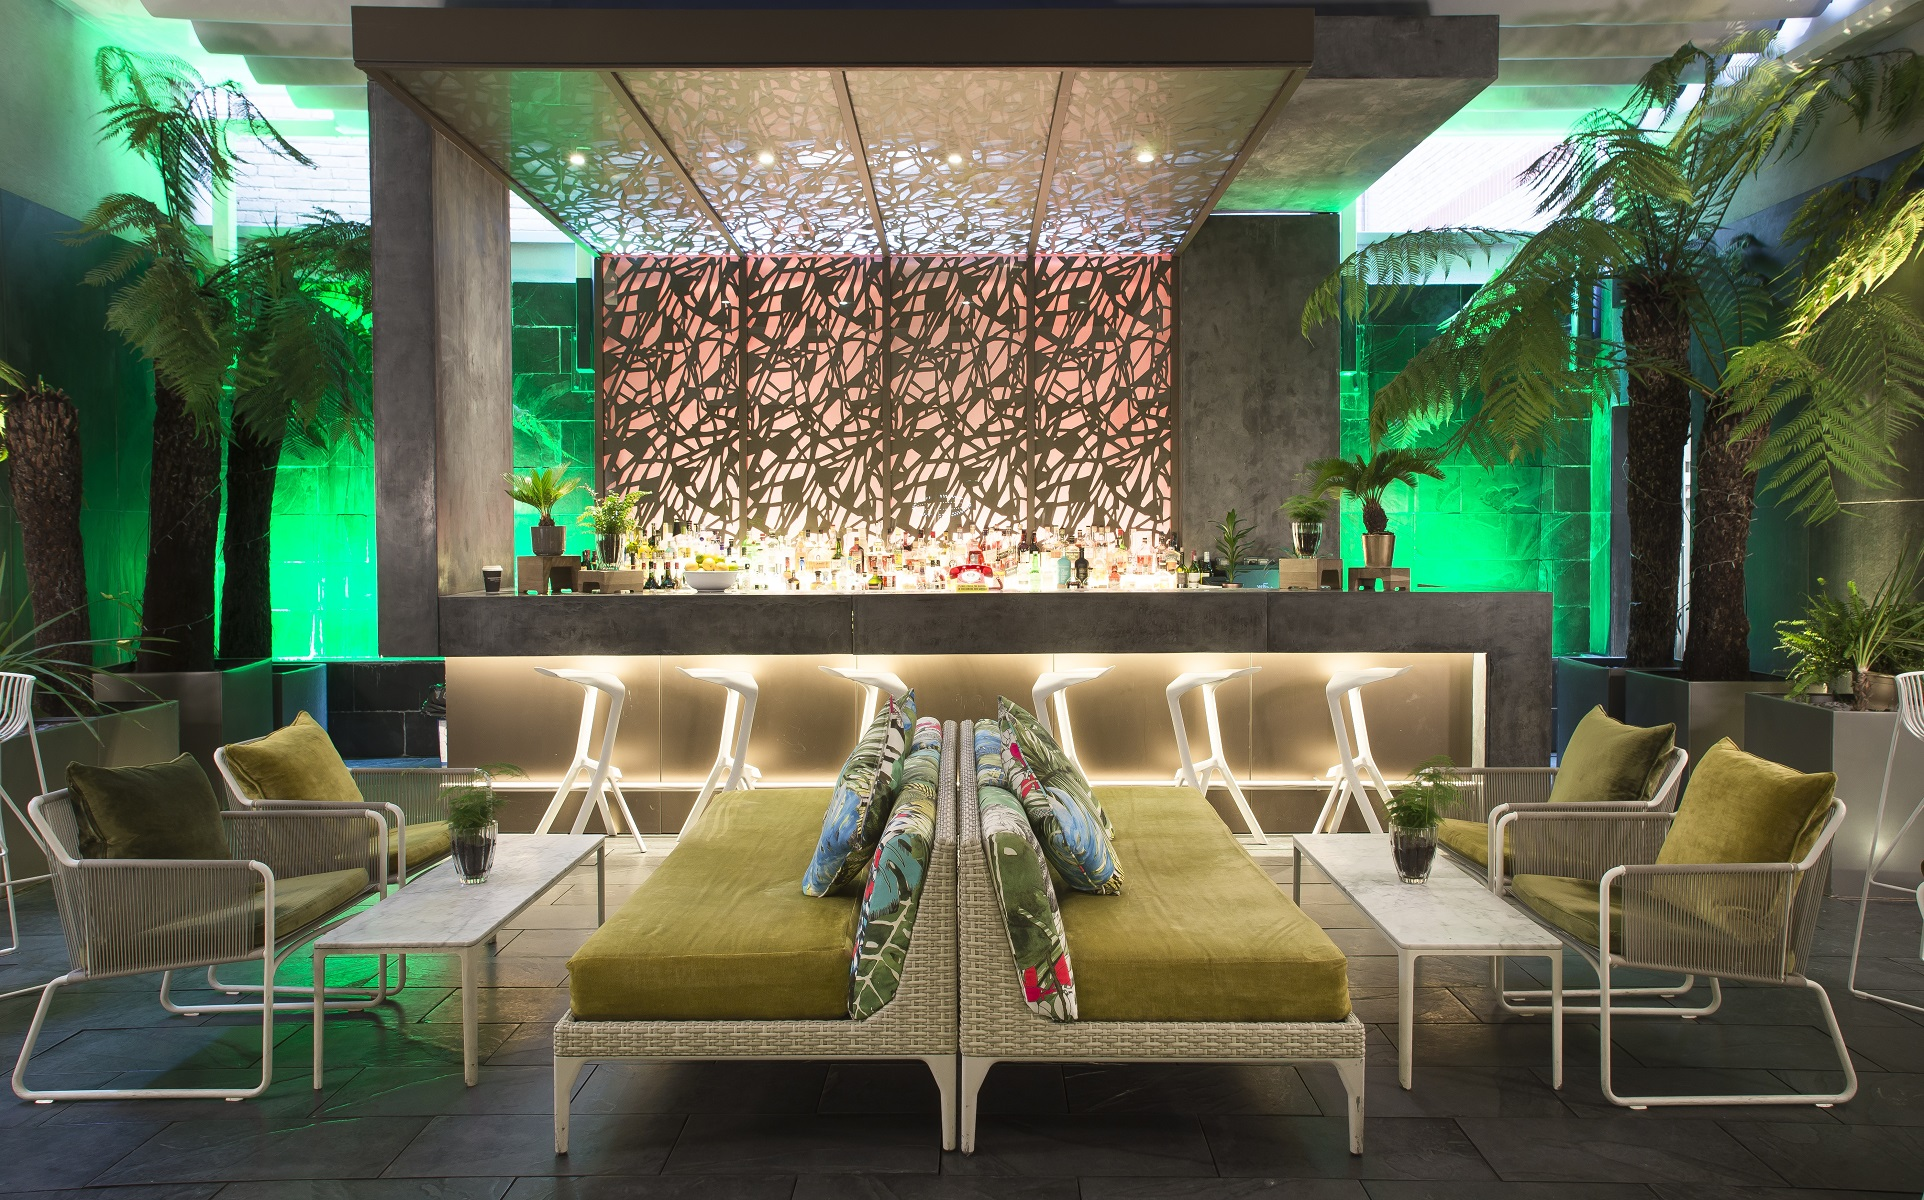 SouthPlaceHotel_SecretGarden_15 RS.jpg